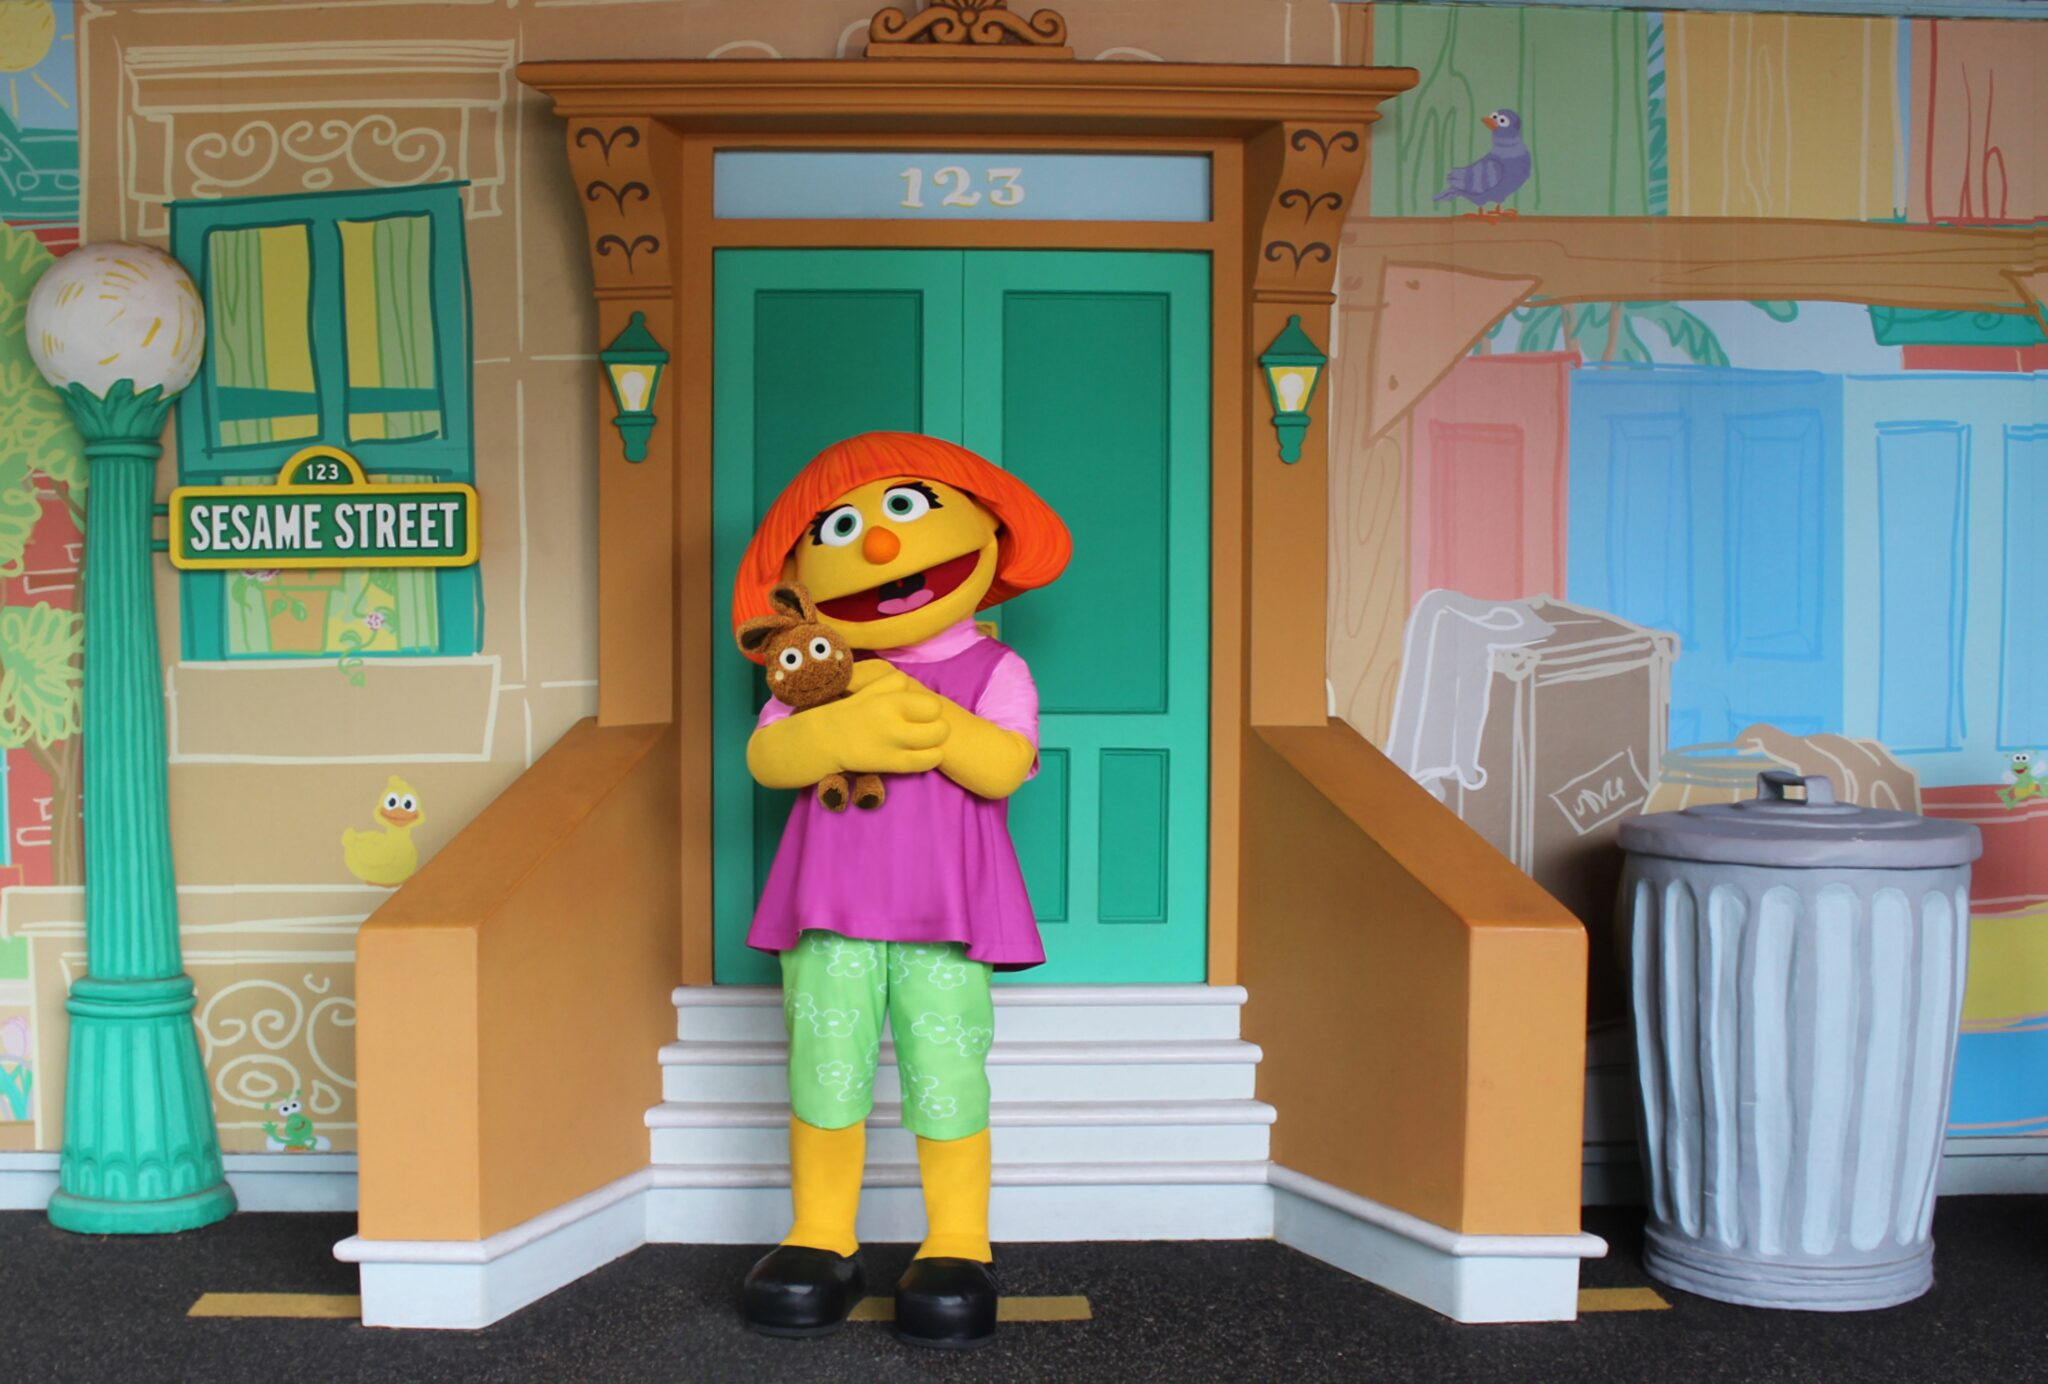 Sesame Street's Julia debuts at SeaWorld Orlando for Autism Acceptance Month